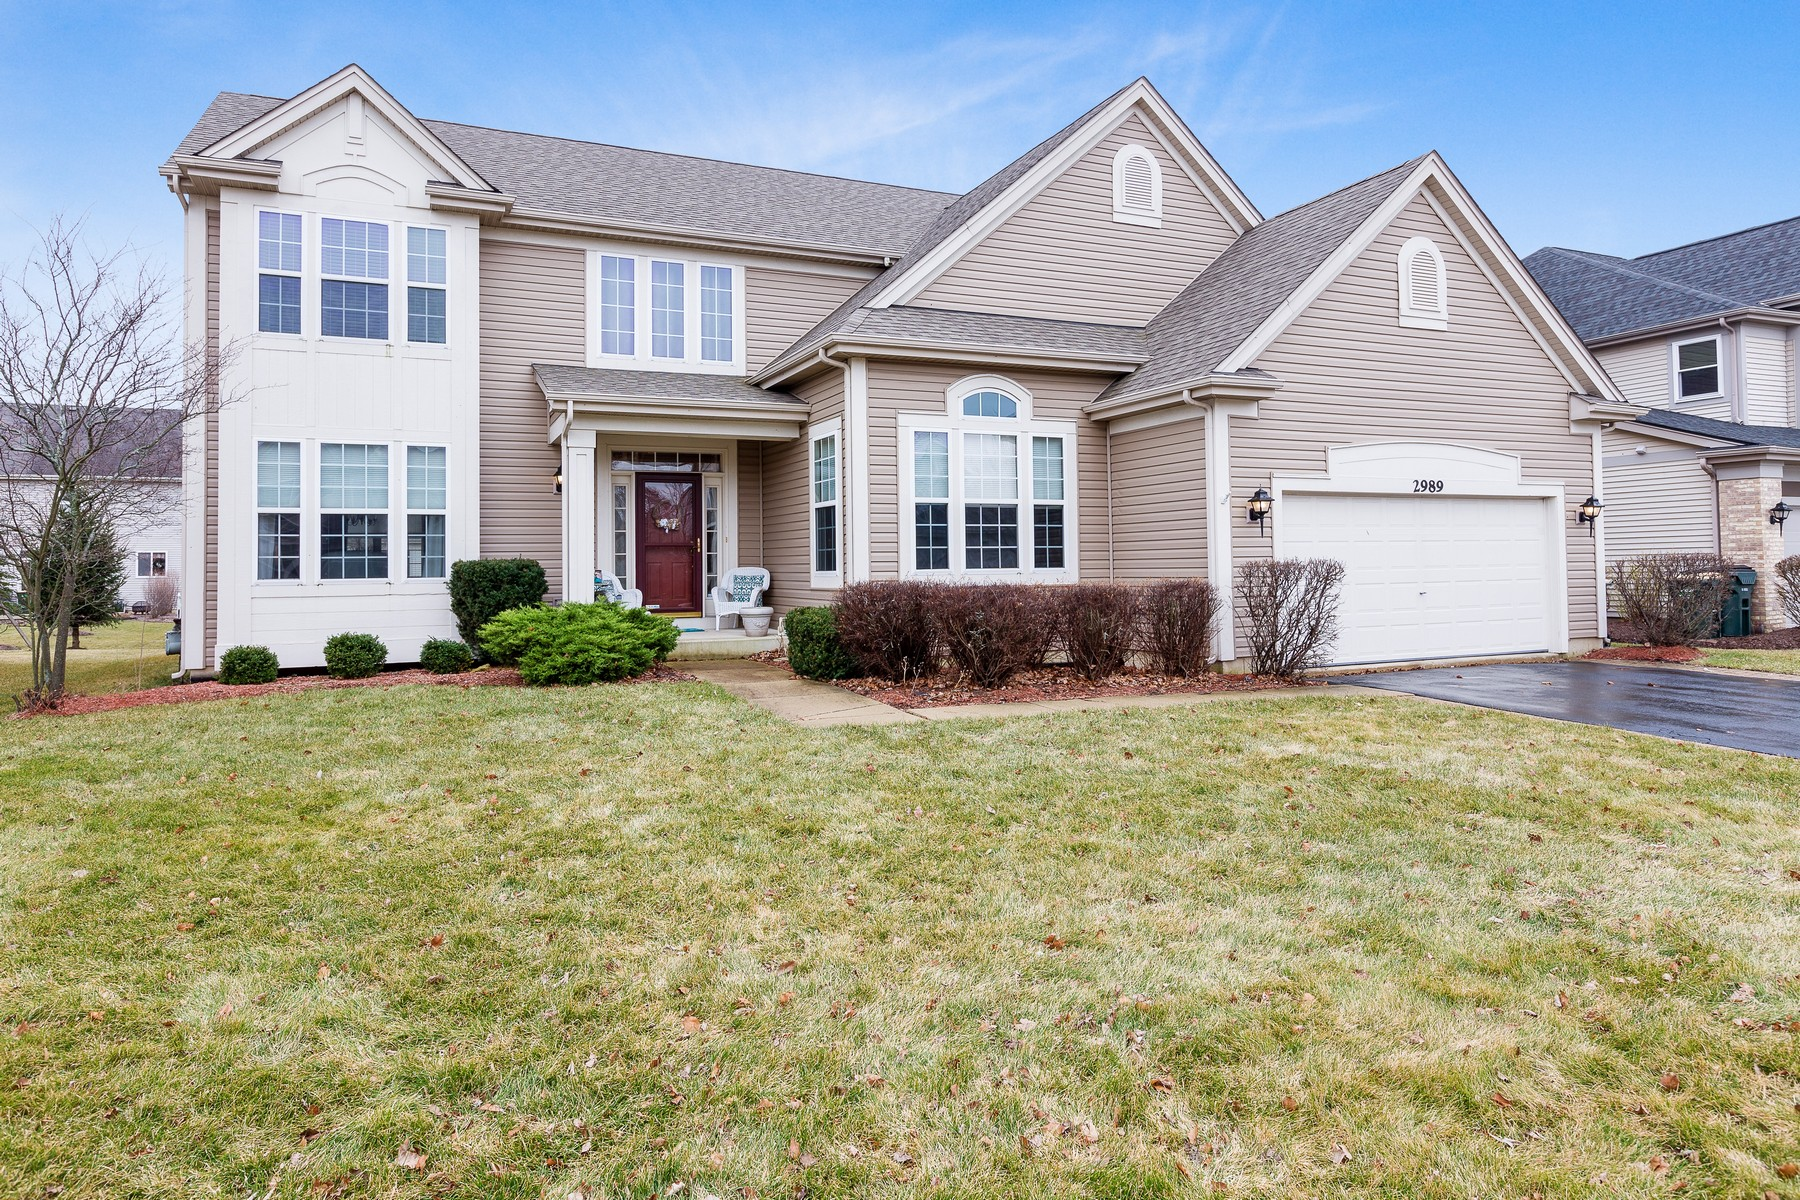 Casa Unifamiliar por un Venta en Perfect Home in Cornerstone Lakes Subdivision 2989 Blanchard Lane West Chicago, Illinois, 60185 Estados Unidos